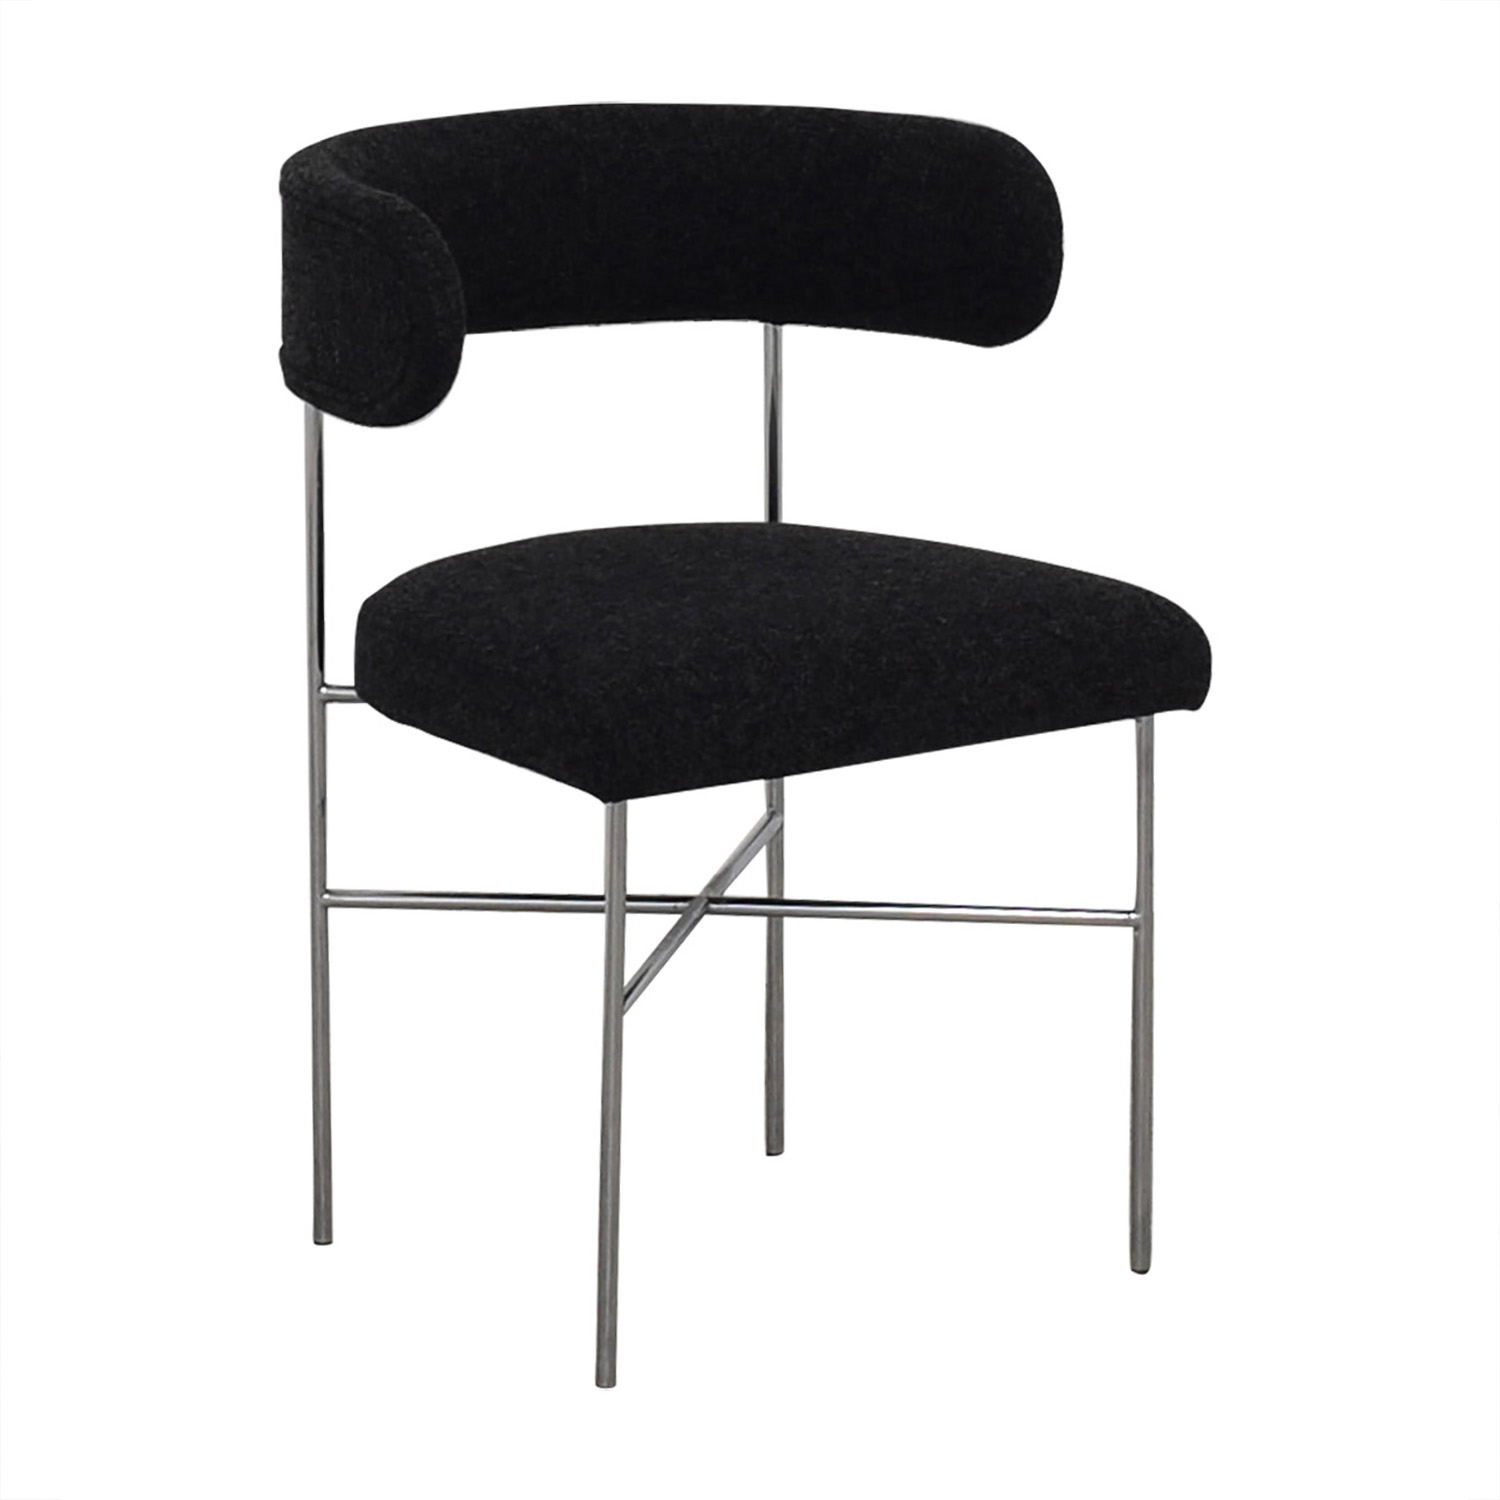 Interior Define Audrey Static Weave Dining Chair price